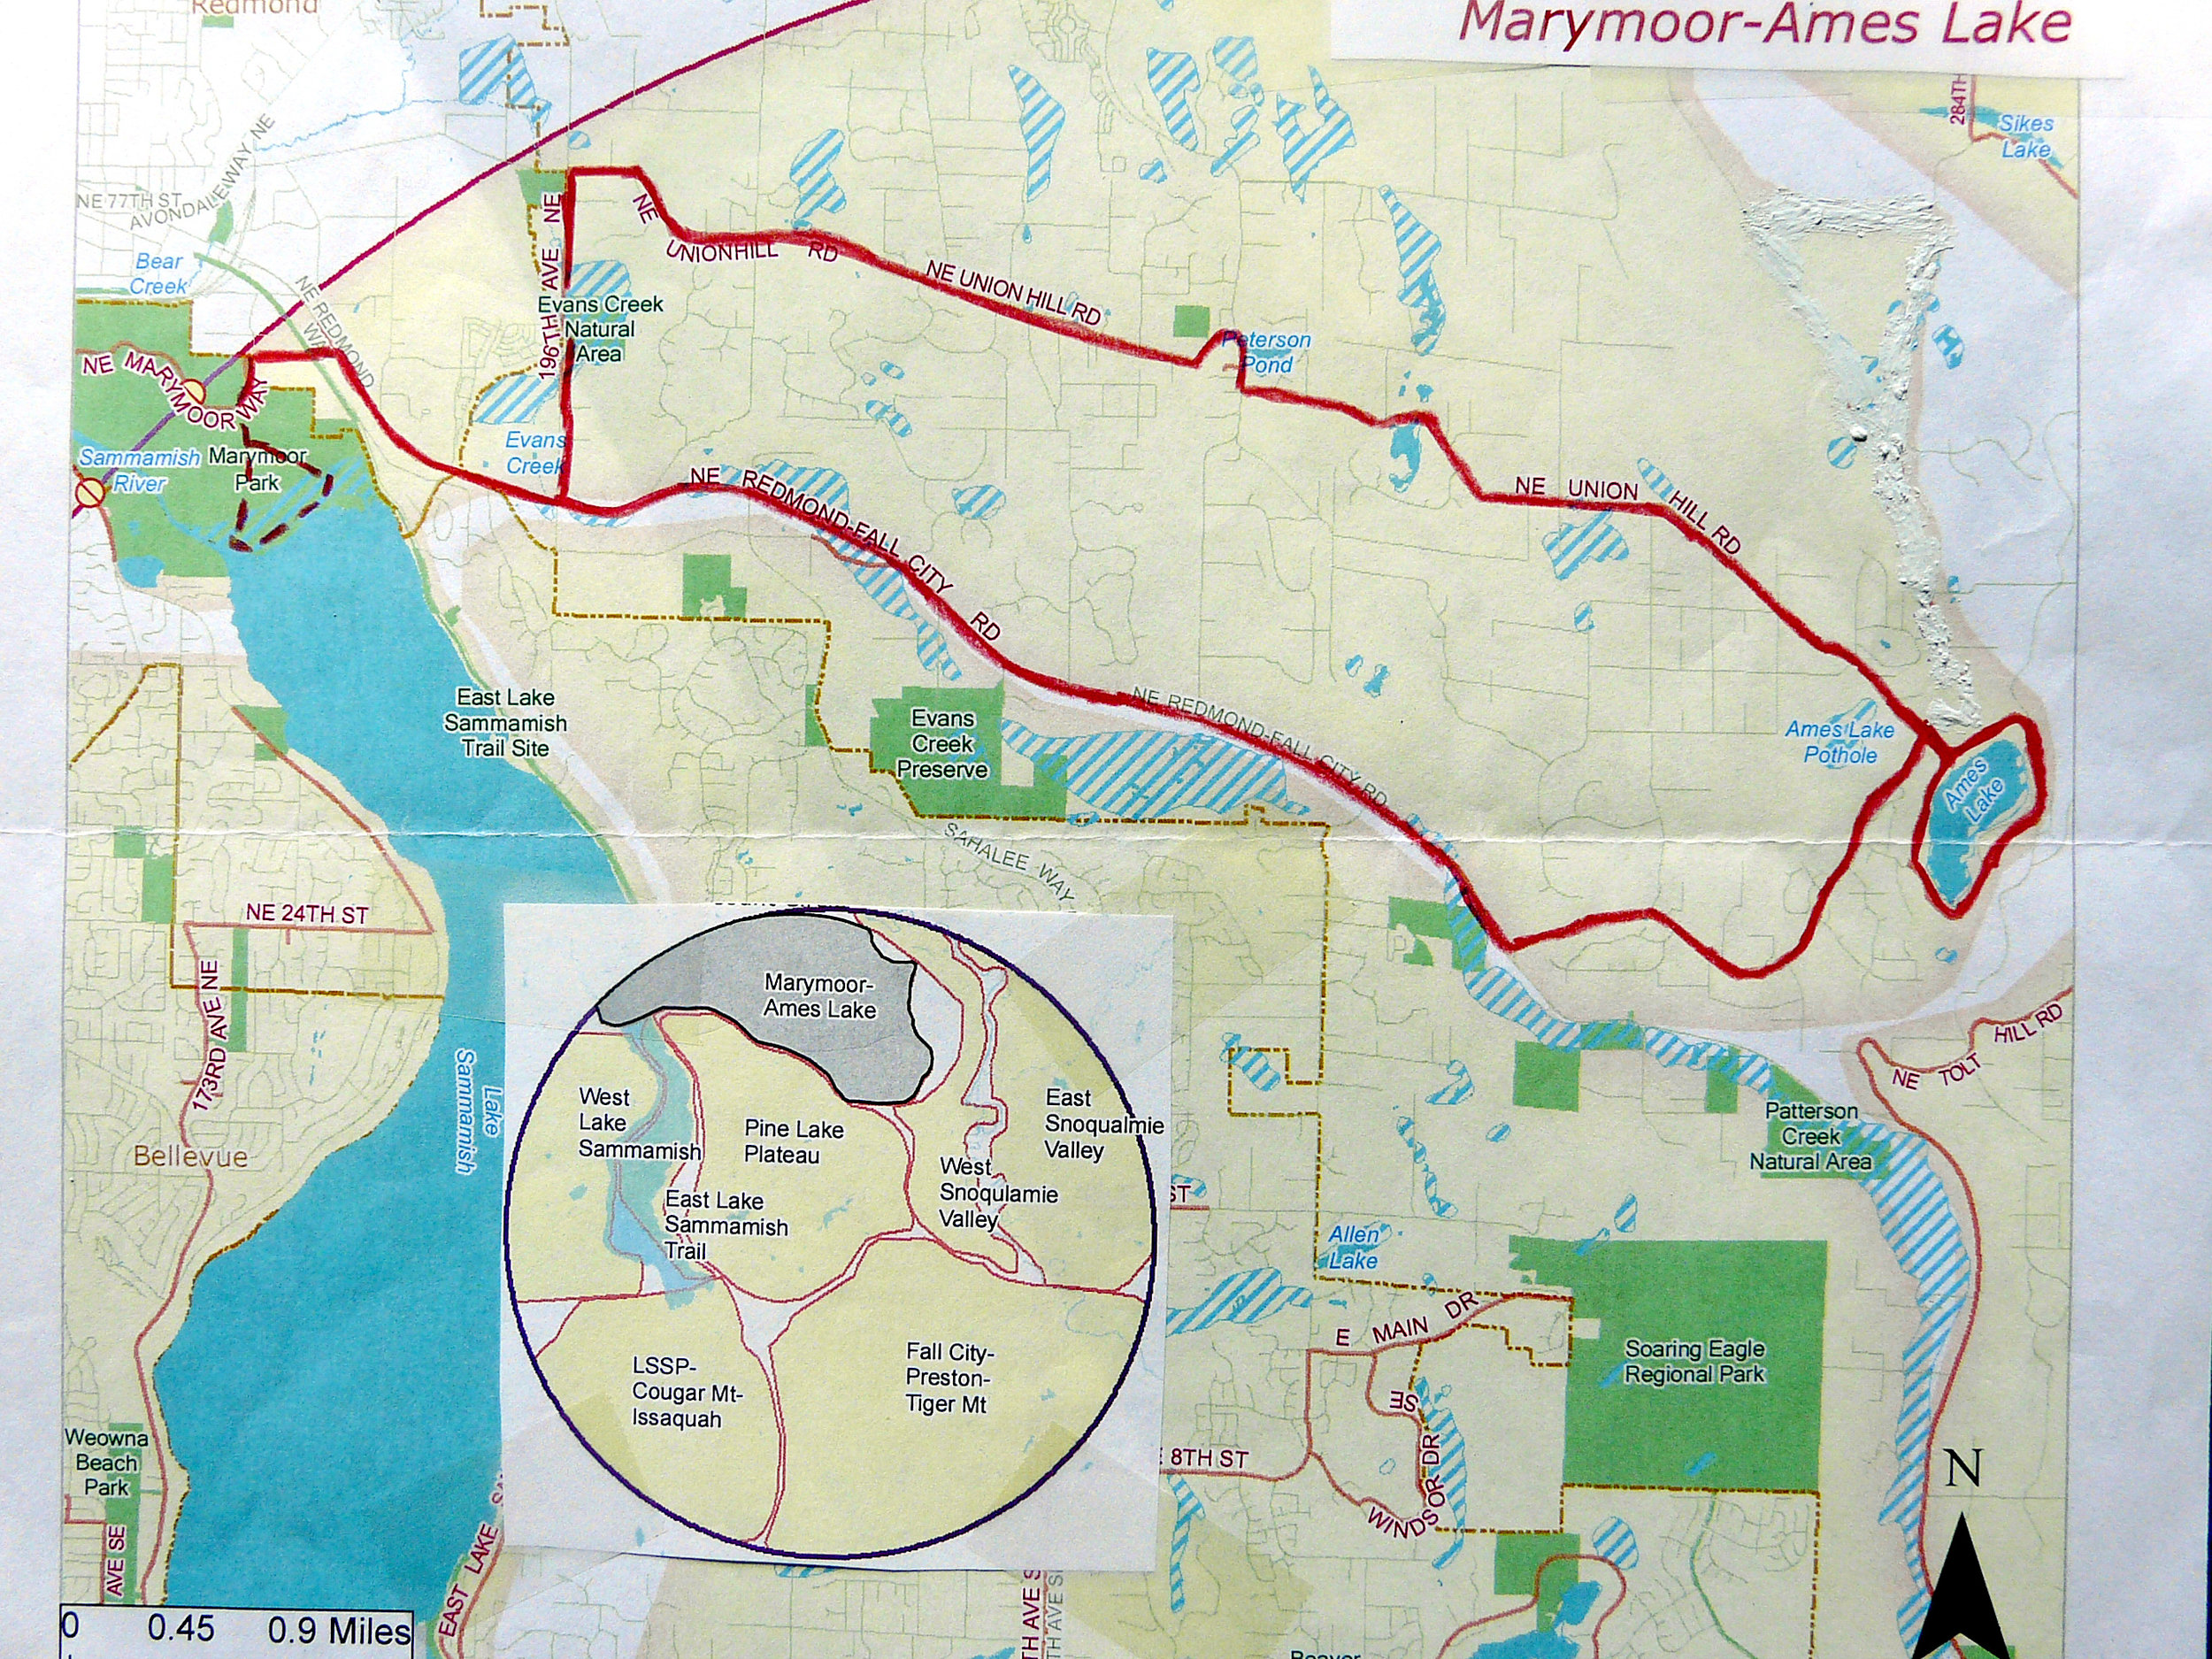 Marymoor Park and Rowing Club - 8 am to 1 pmWe walk the park (about 3.5 miles) and then make a short drive to the Rowing Club to finish walking our route there (1/2 mile).Team leader: Brian Bell, 425-485-8058 or bellasoc@isomedia.com